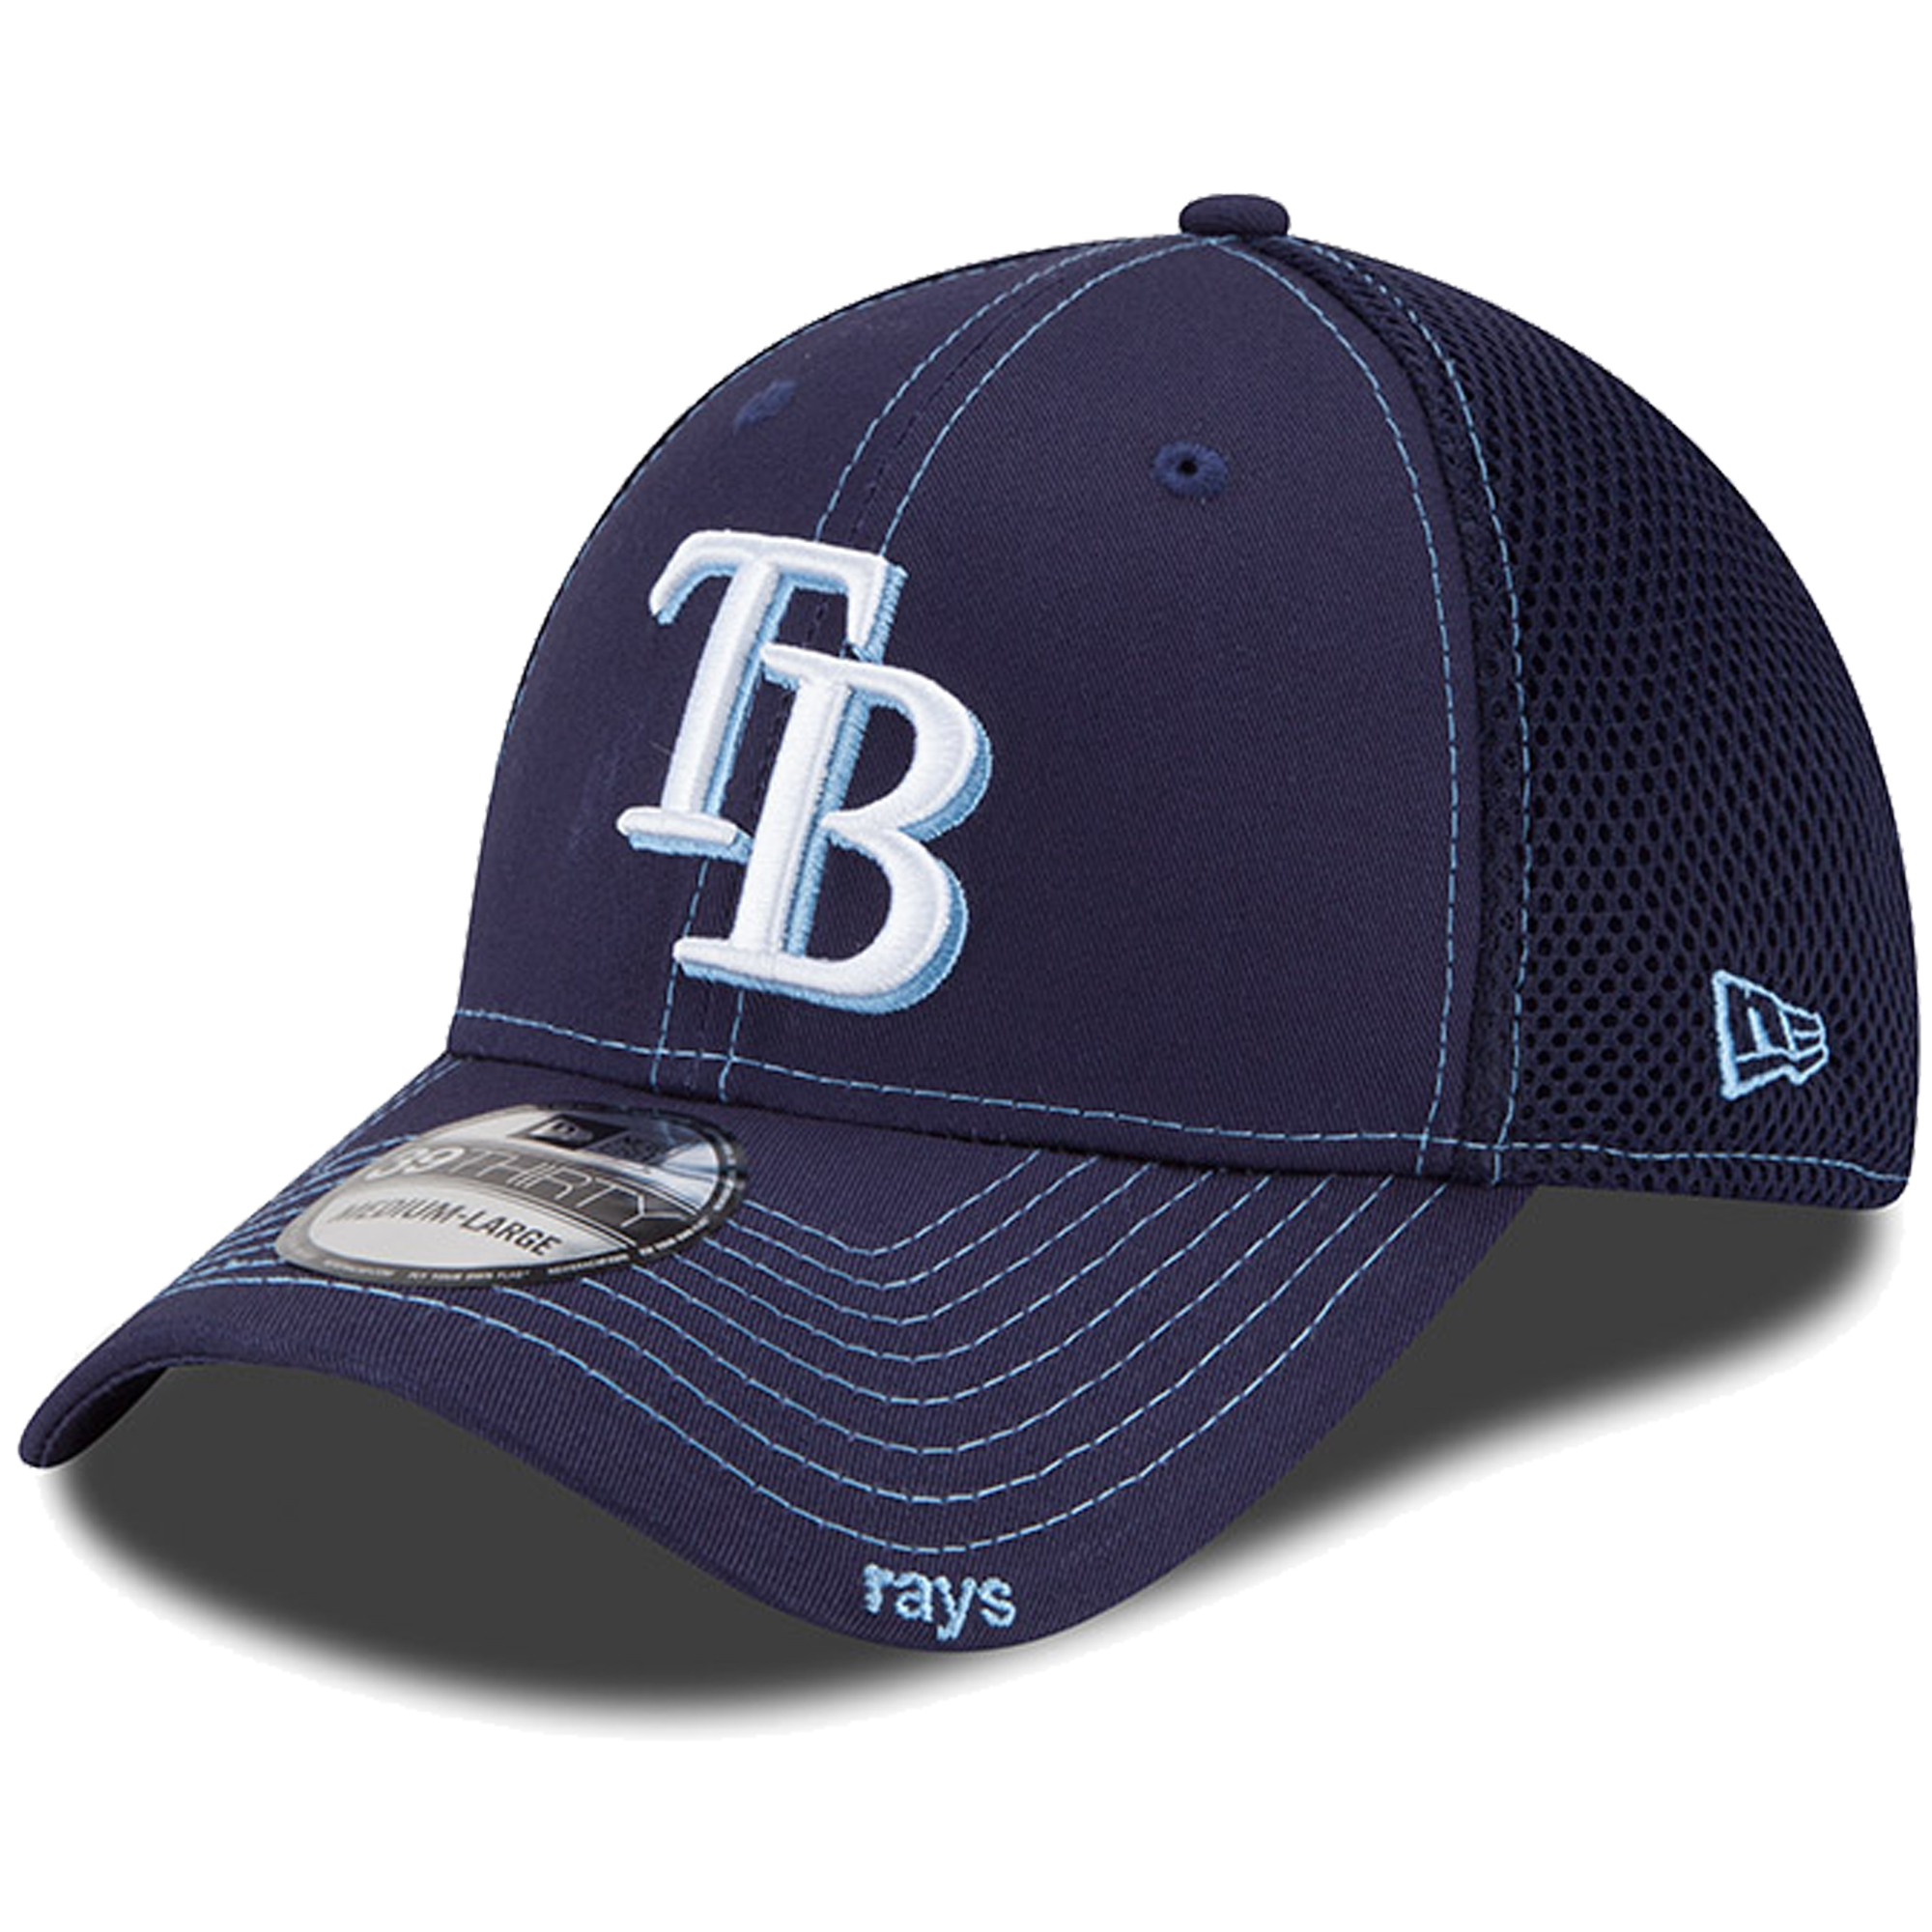 New Era Tampa Bay Rays Navy Blue Neo 39THIRTY Stretch Fit Hat